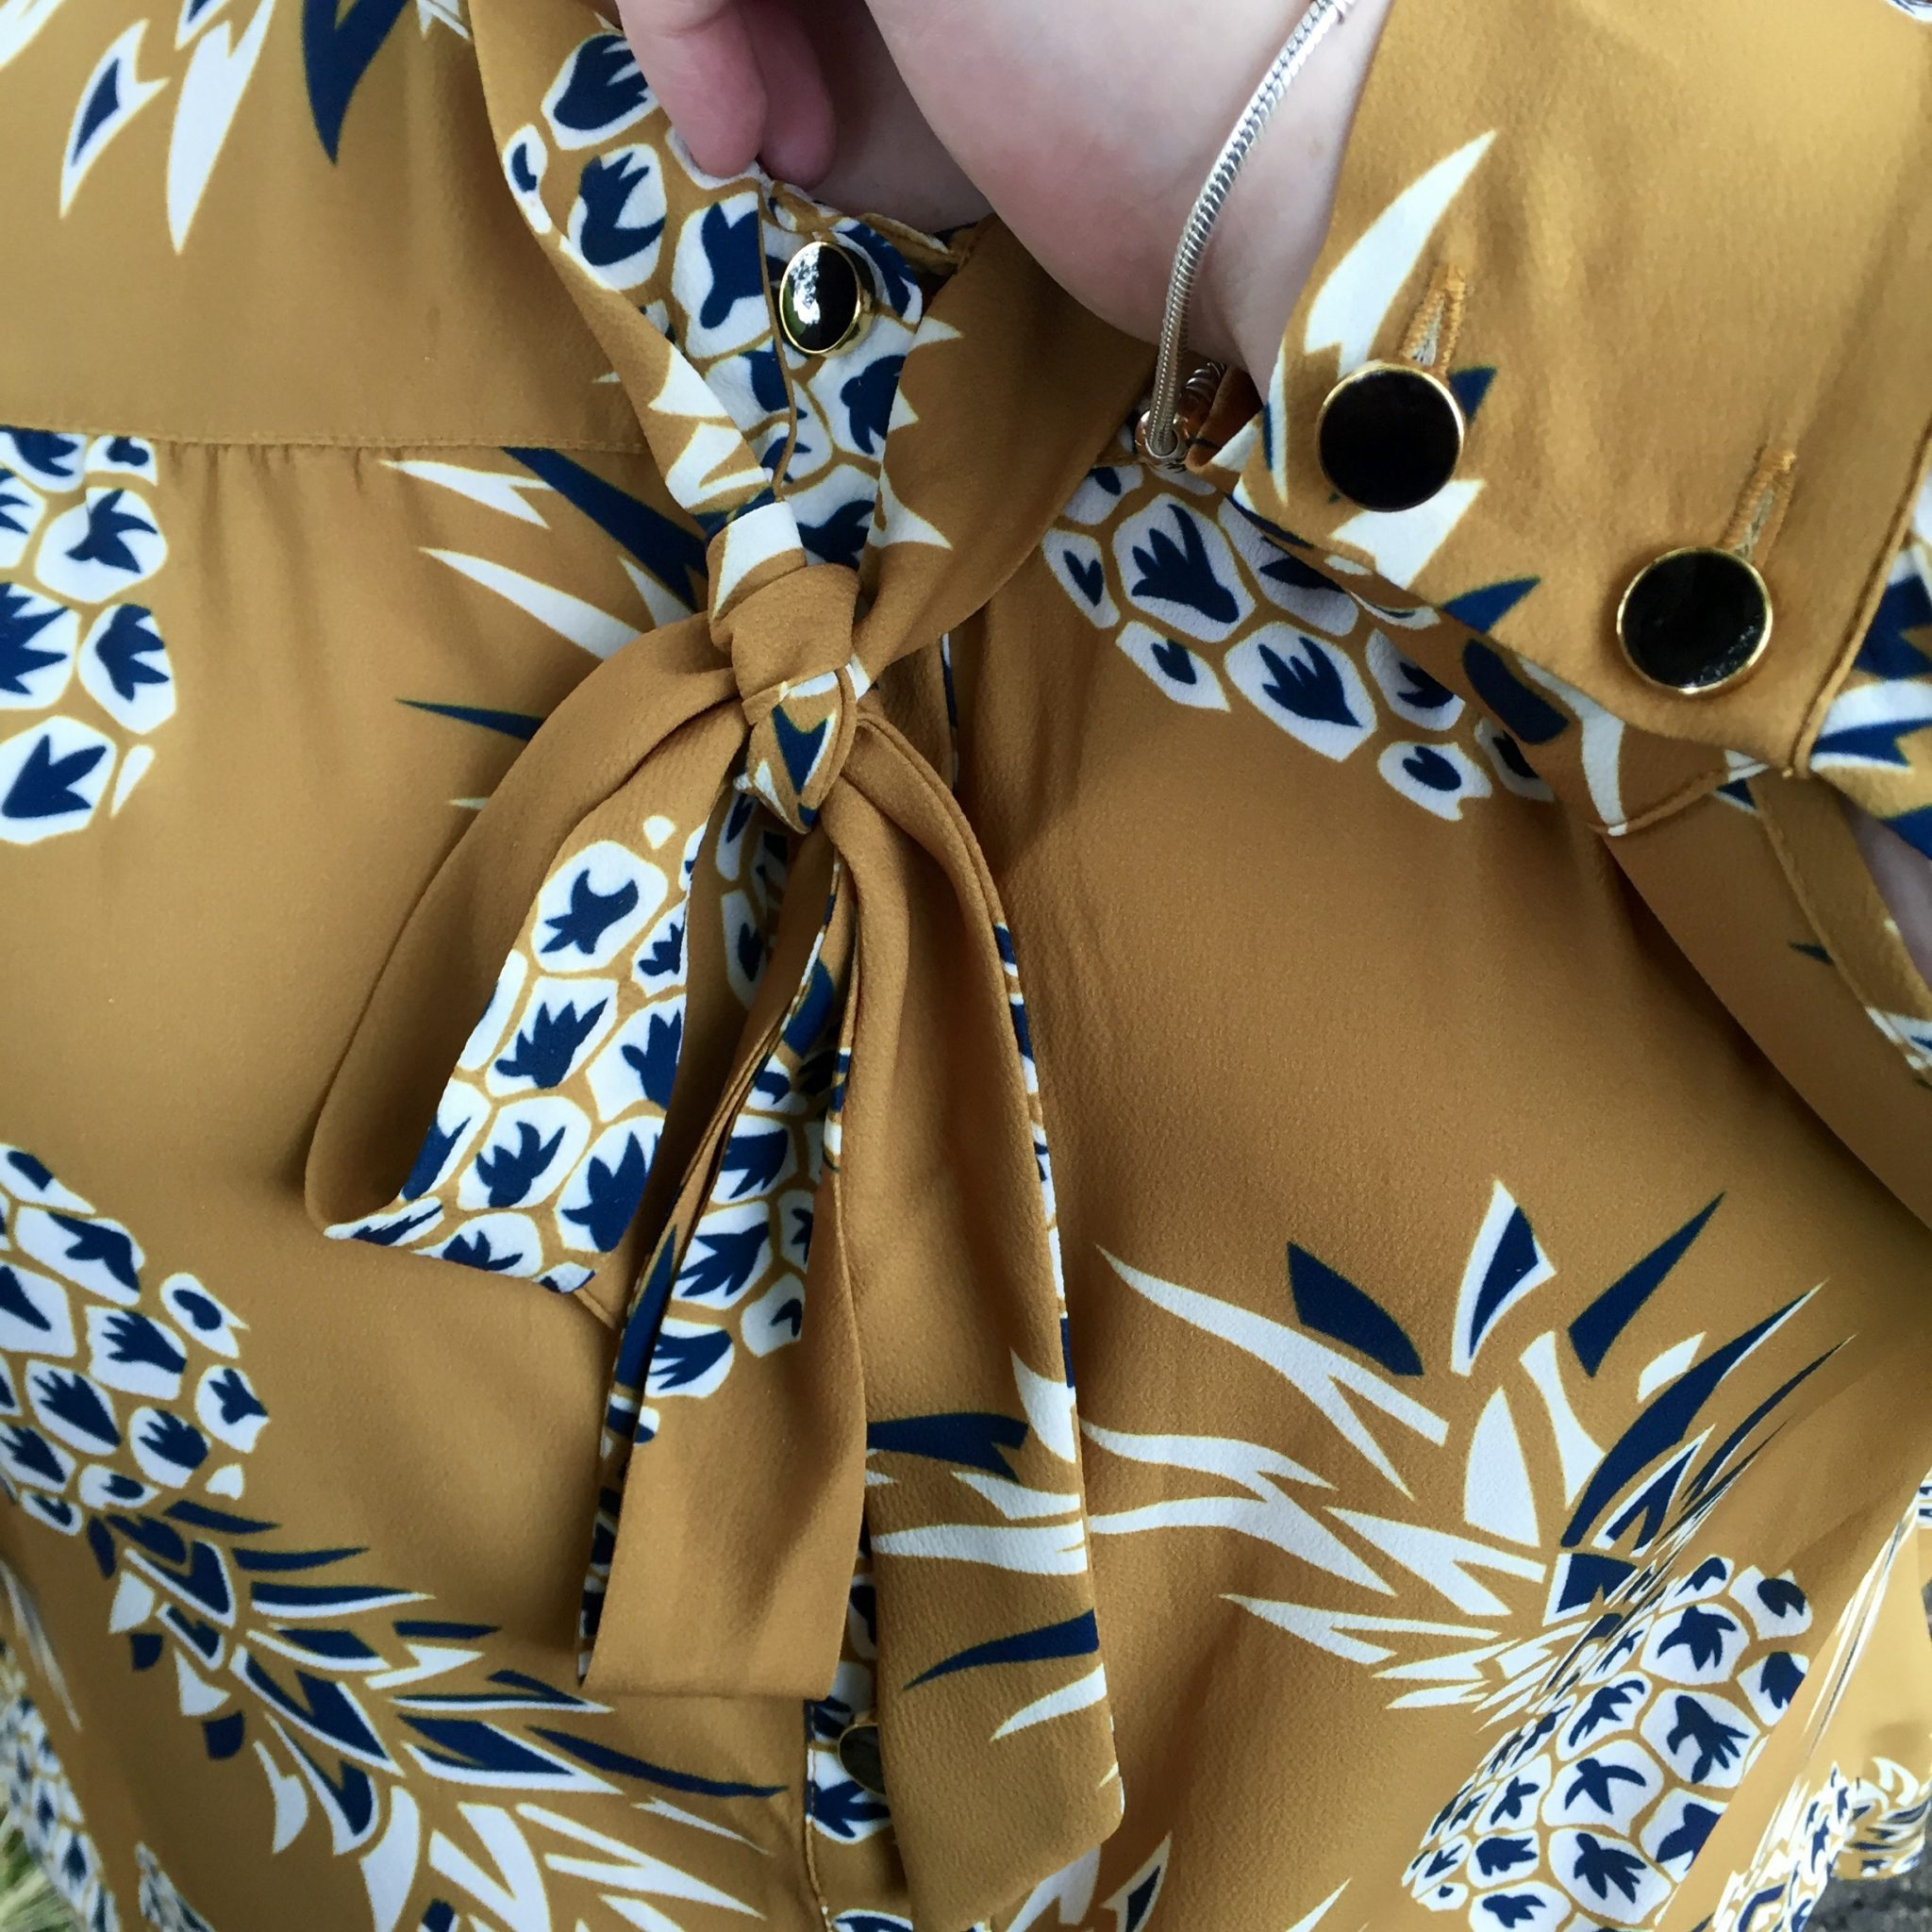 Premium Plus Size Fashion - Plus Size Pineapple Shirt - Pretty Big Butterflies